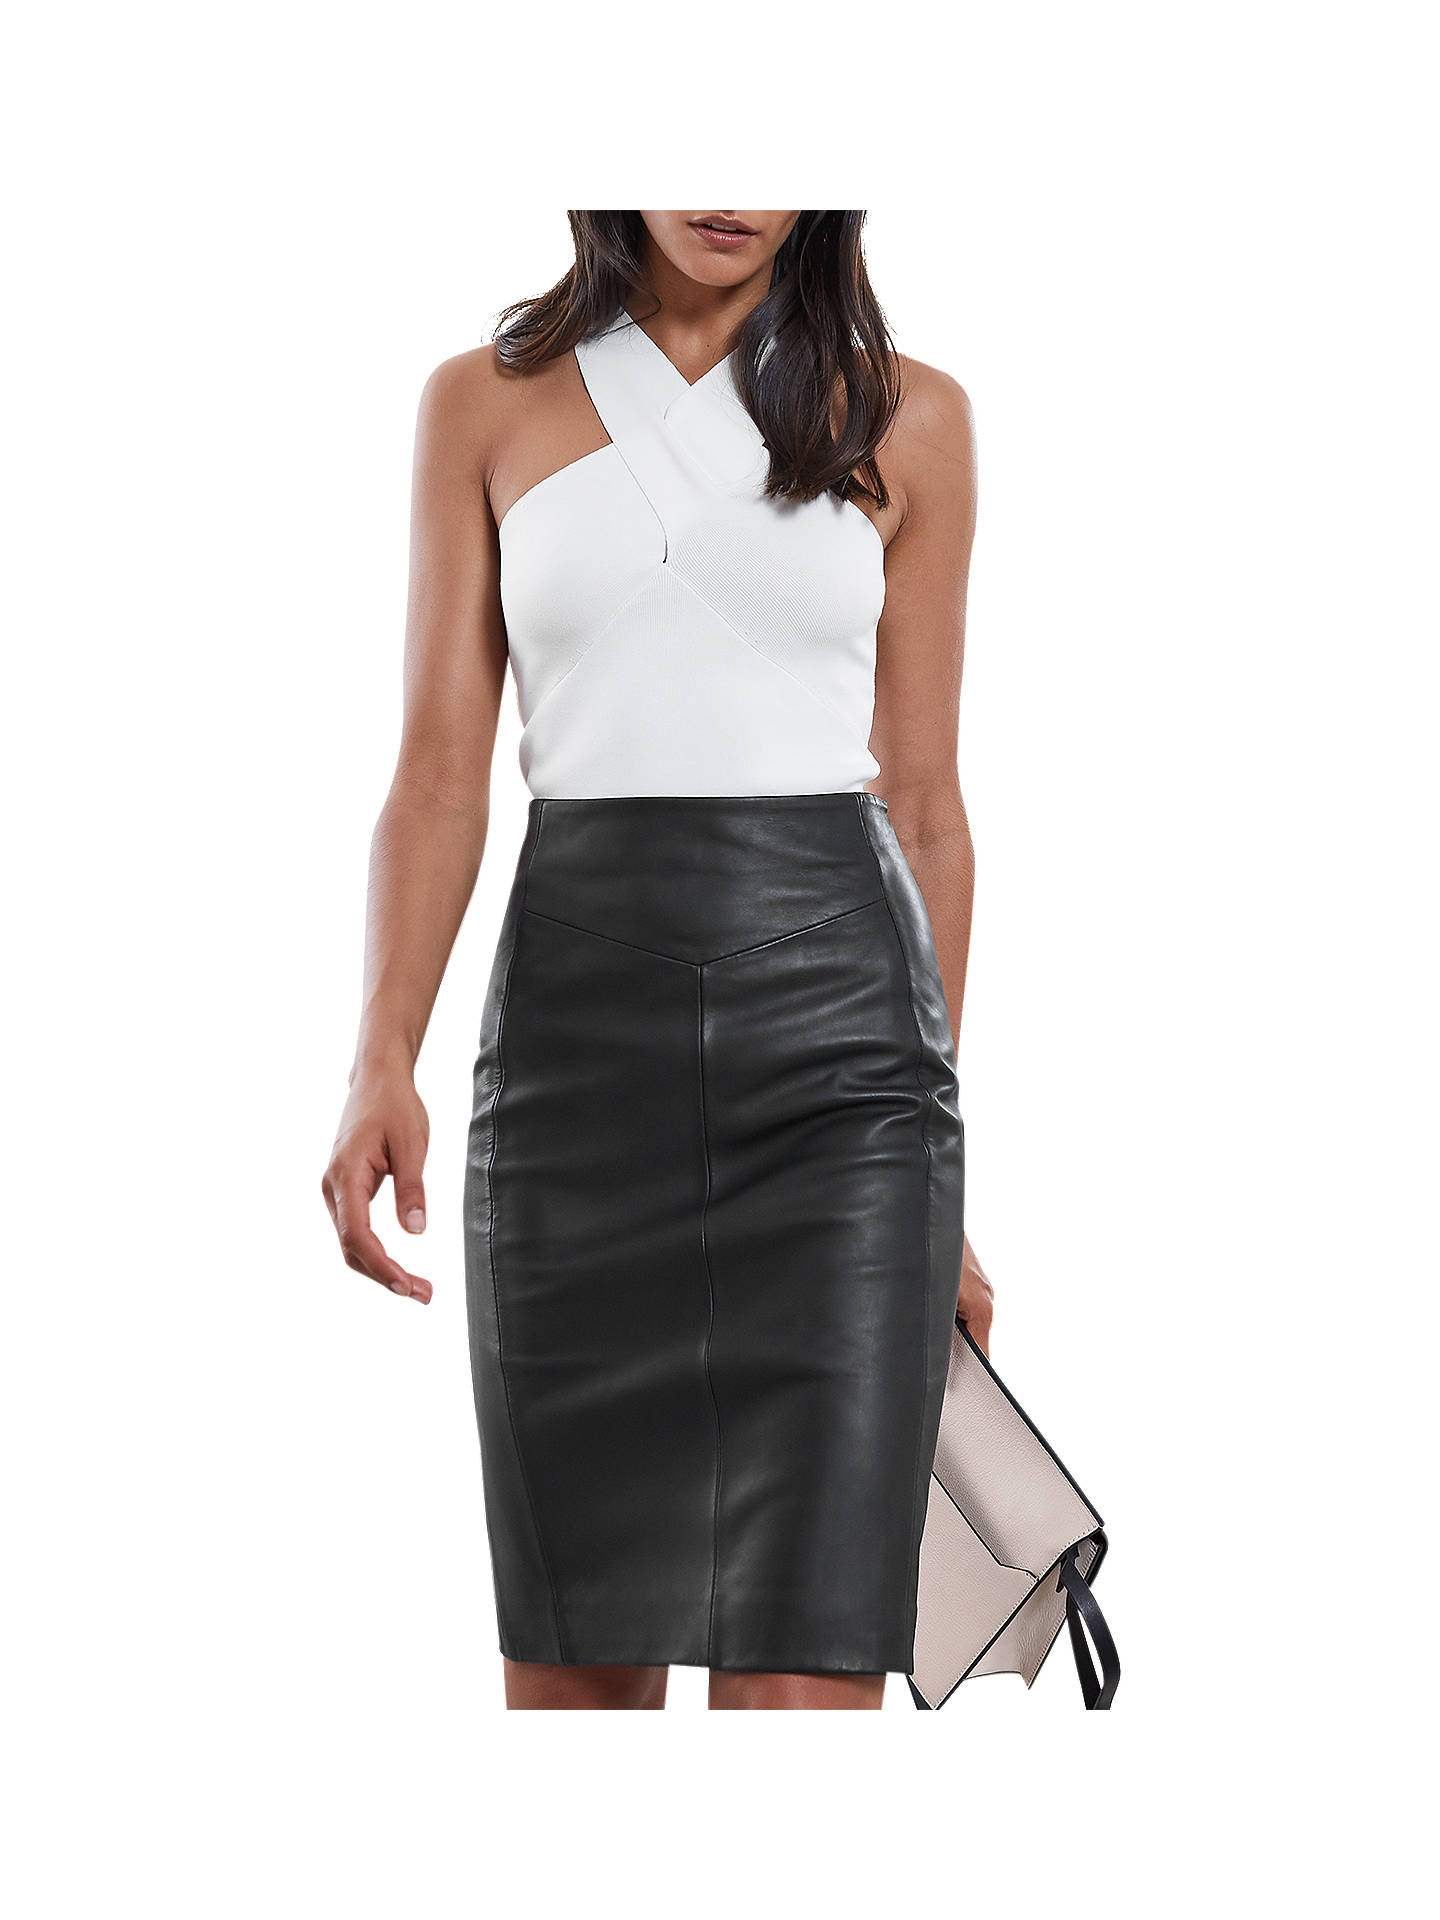 8799e88988 Buy Reiss Megan Leather Skirt, Black, 6 Online at johnlewis.com ...